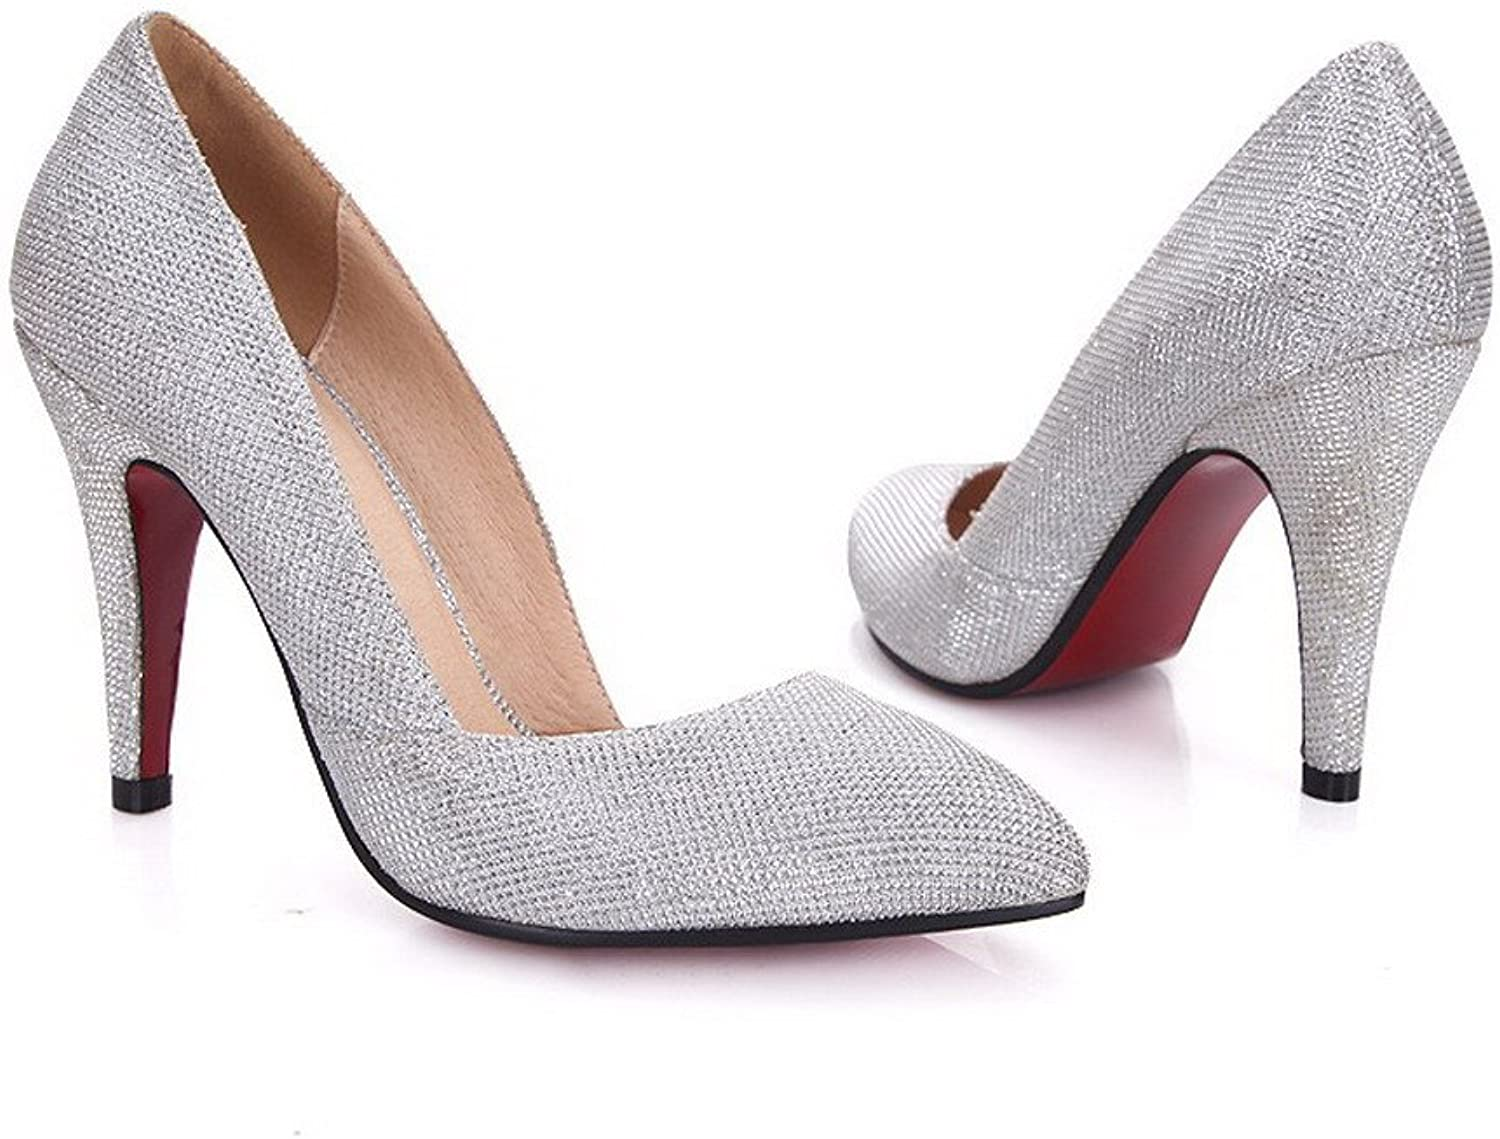 WeiPoot Womens Closed Pointed Toe High Heel PU Frosted Solid Pumps, Silver, 6.5 B(M) US